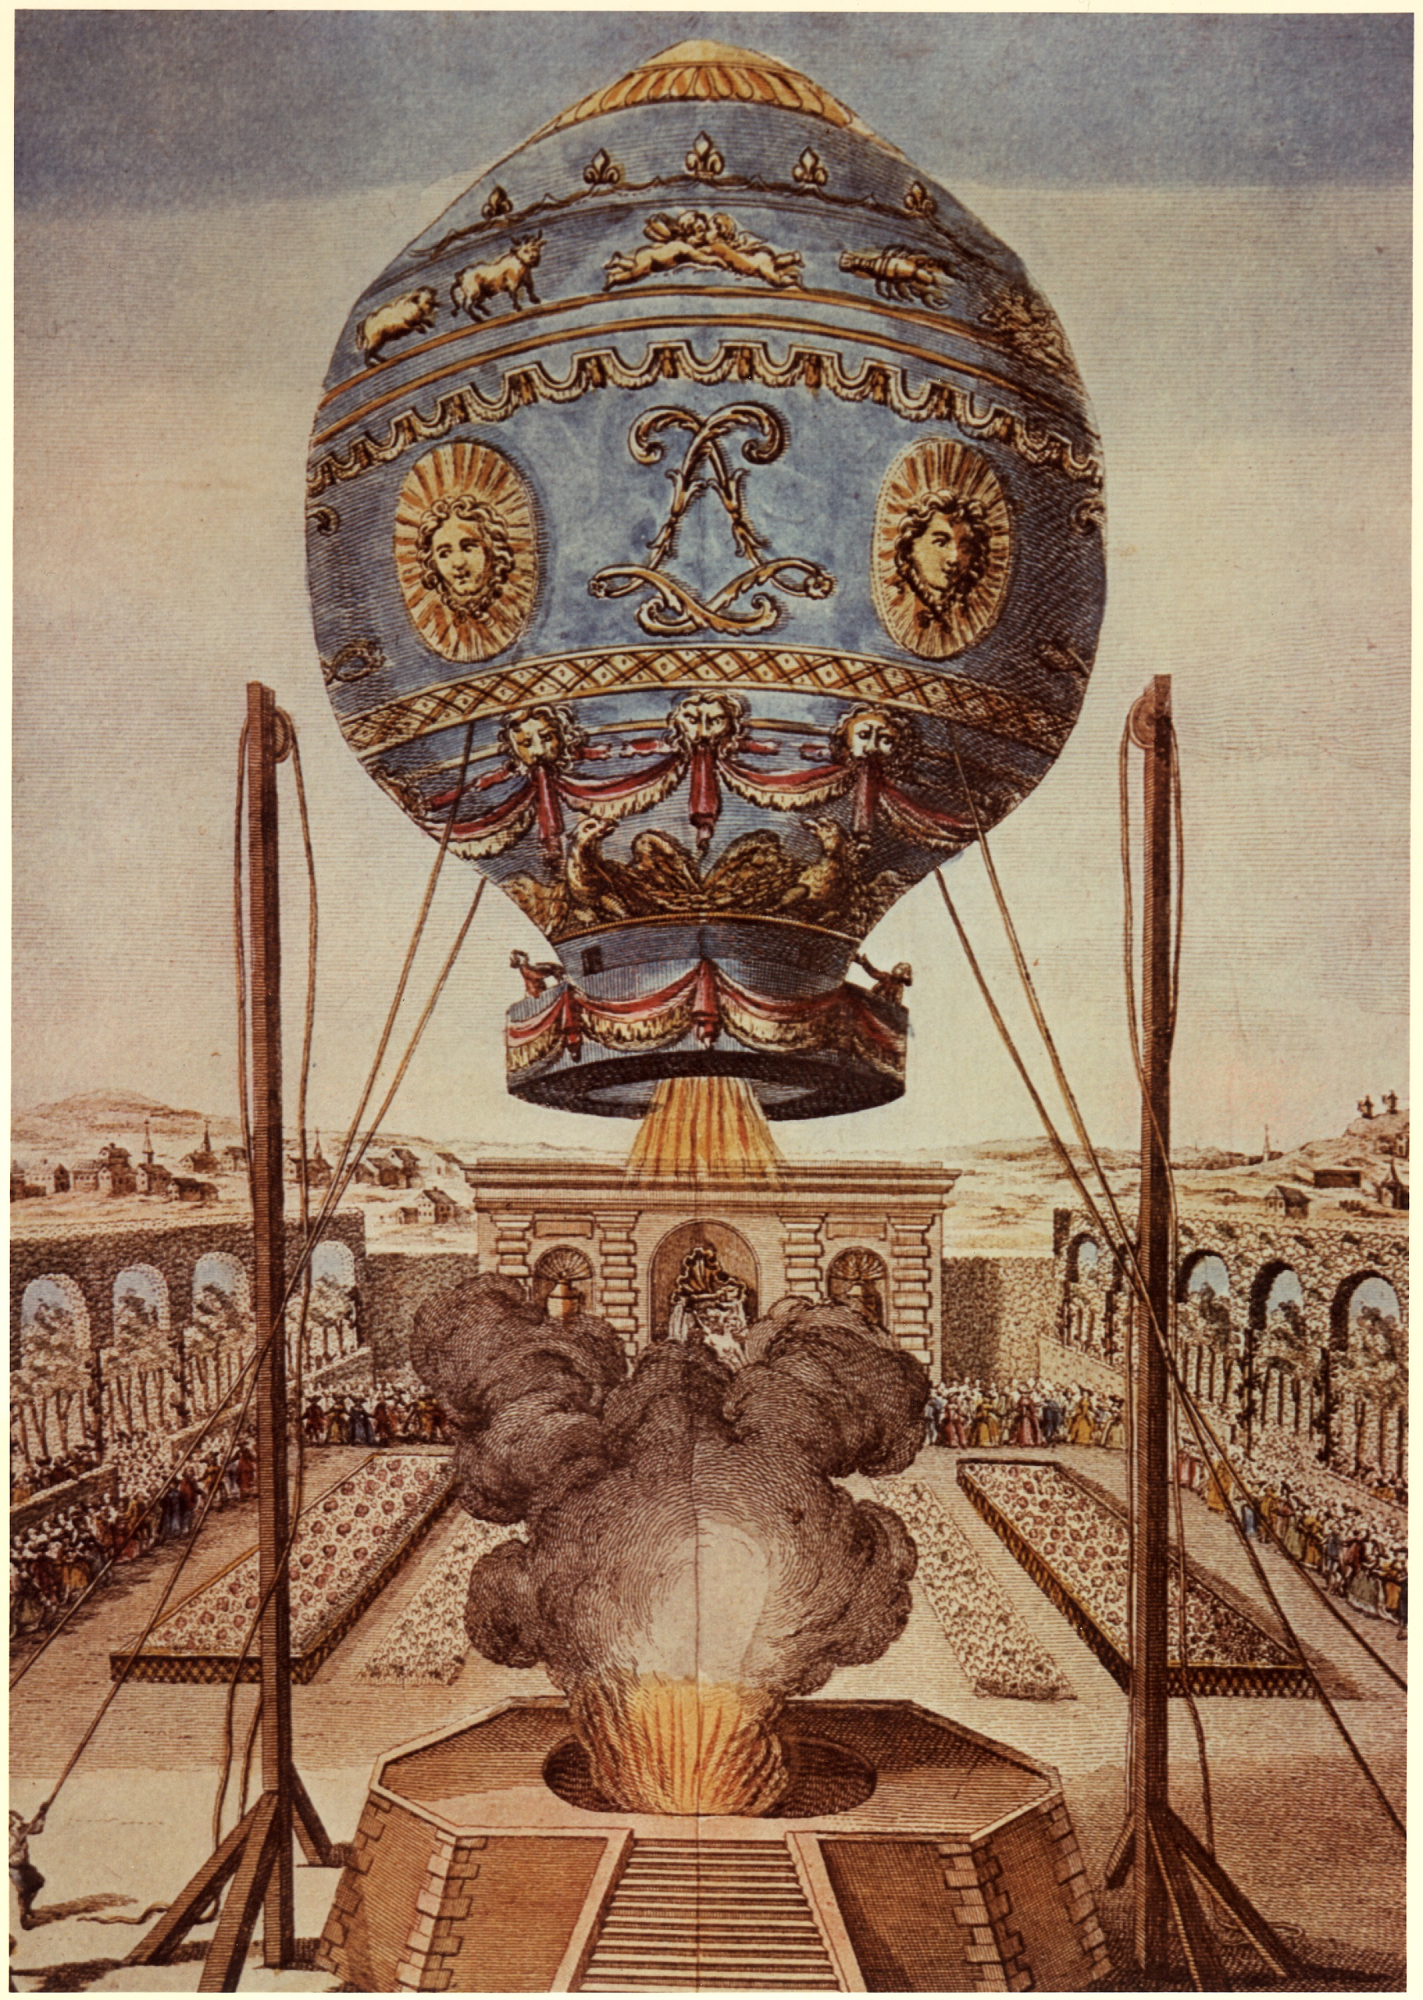 The Birth of the Balloon